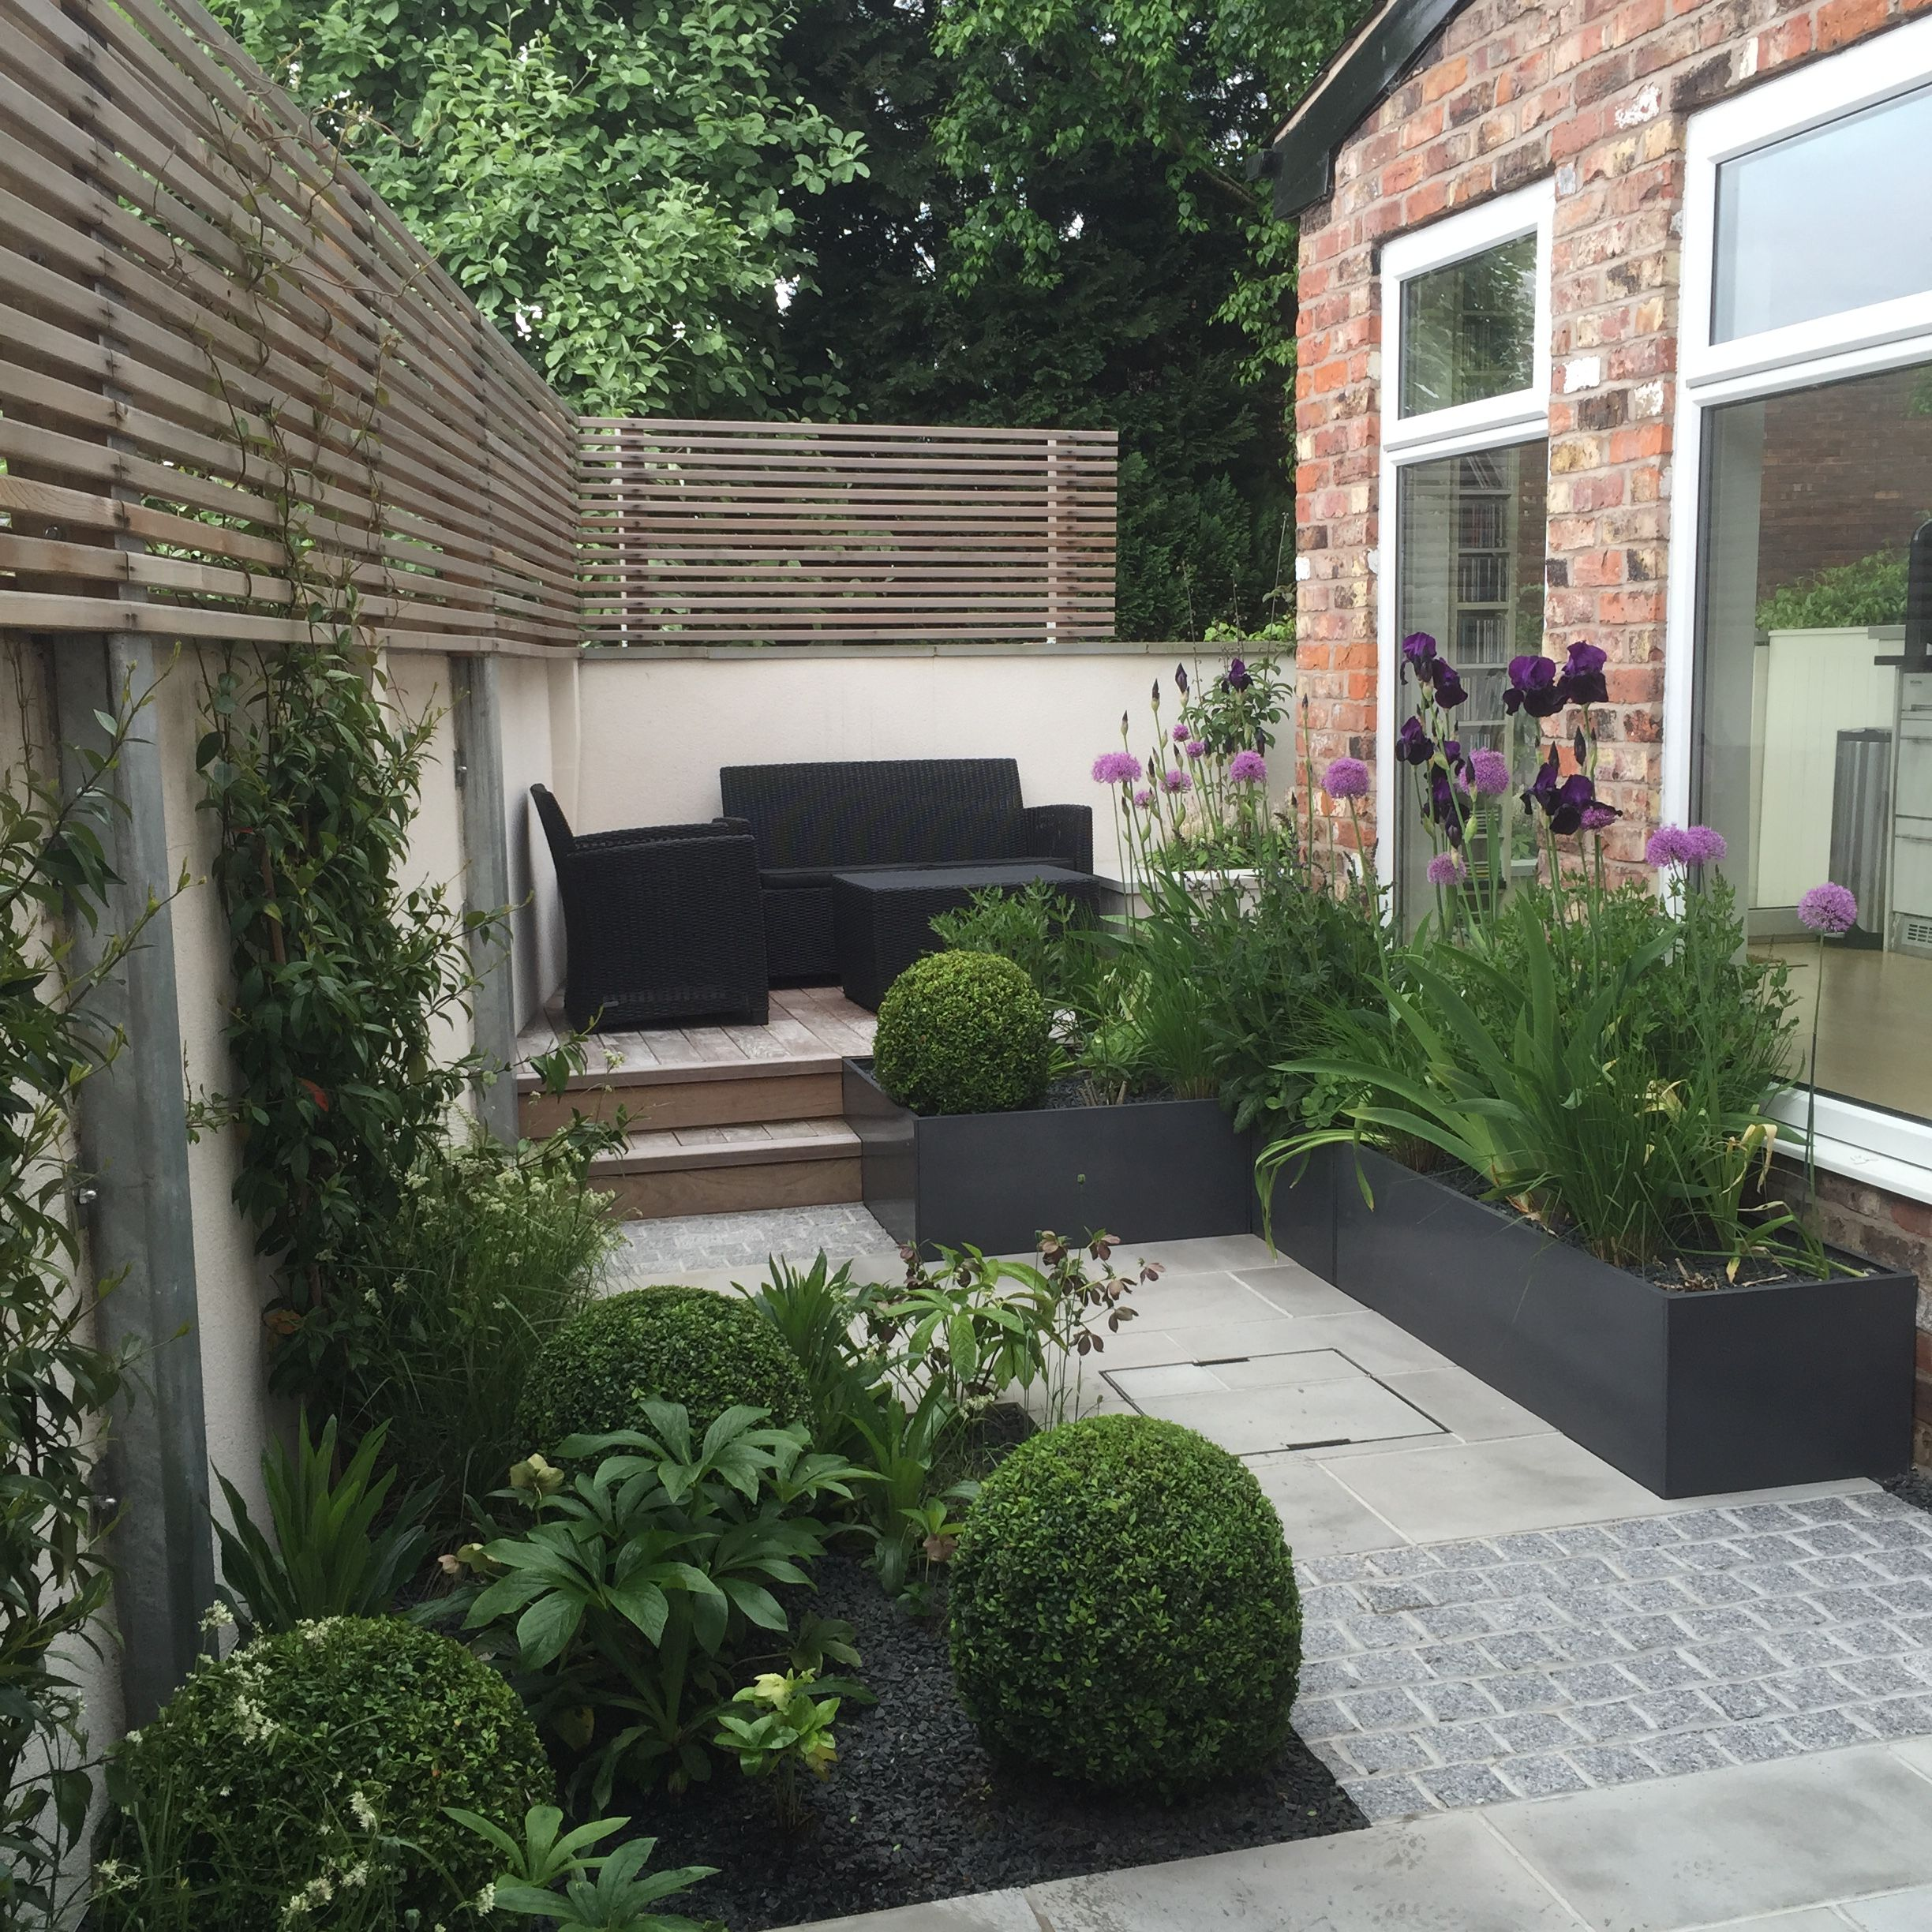 Garden Furniture Cheshire Raised beds with variation of green flowers garden furniture by raised beds with variation of green flowers garden furniture by patricia get matched workwithnaturefo